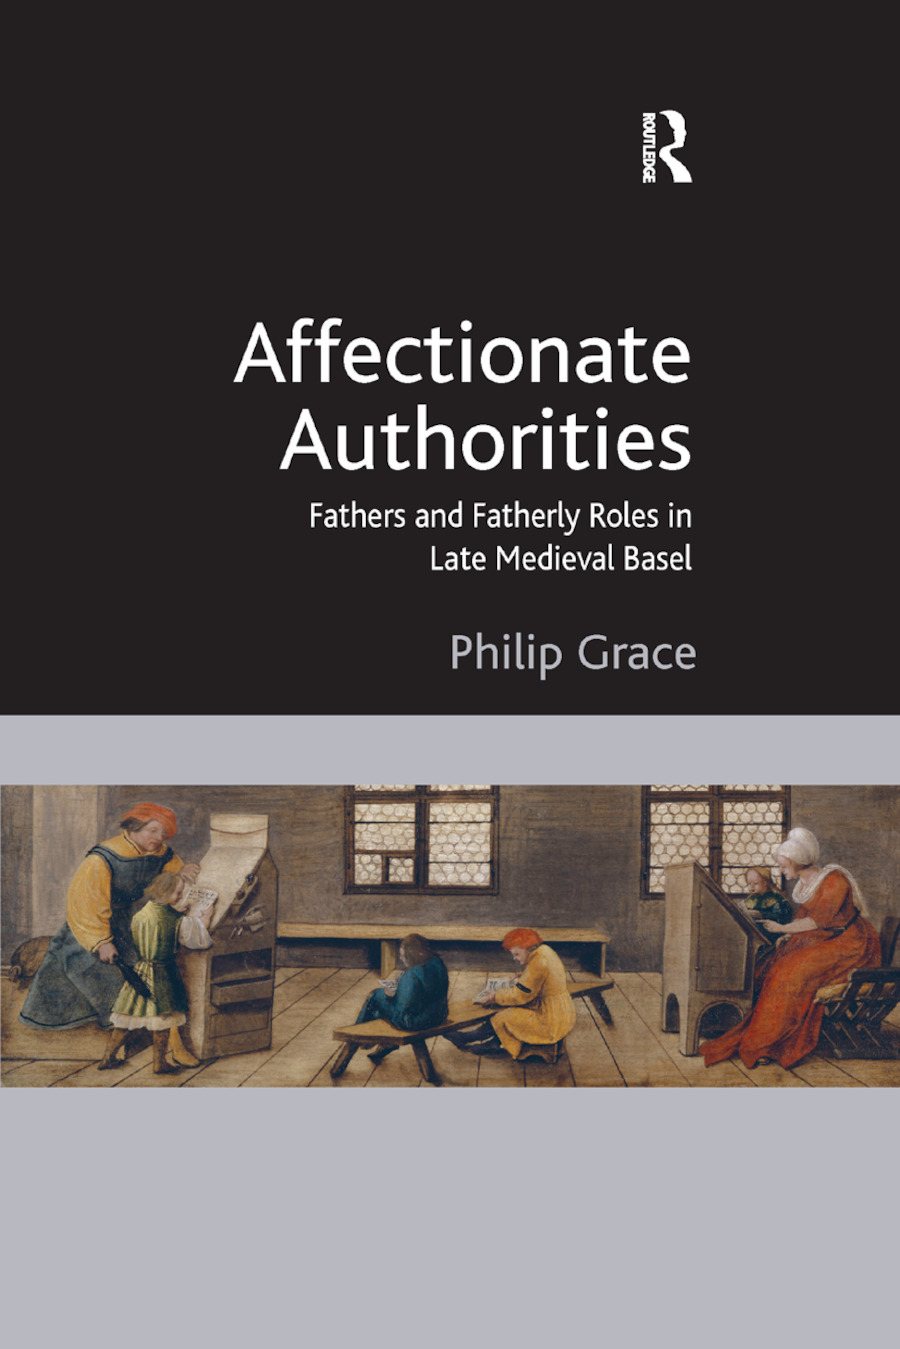 Affectionate Authorities: Fathers and Fatherly Roles in Late Medieval Basel book cover